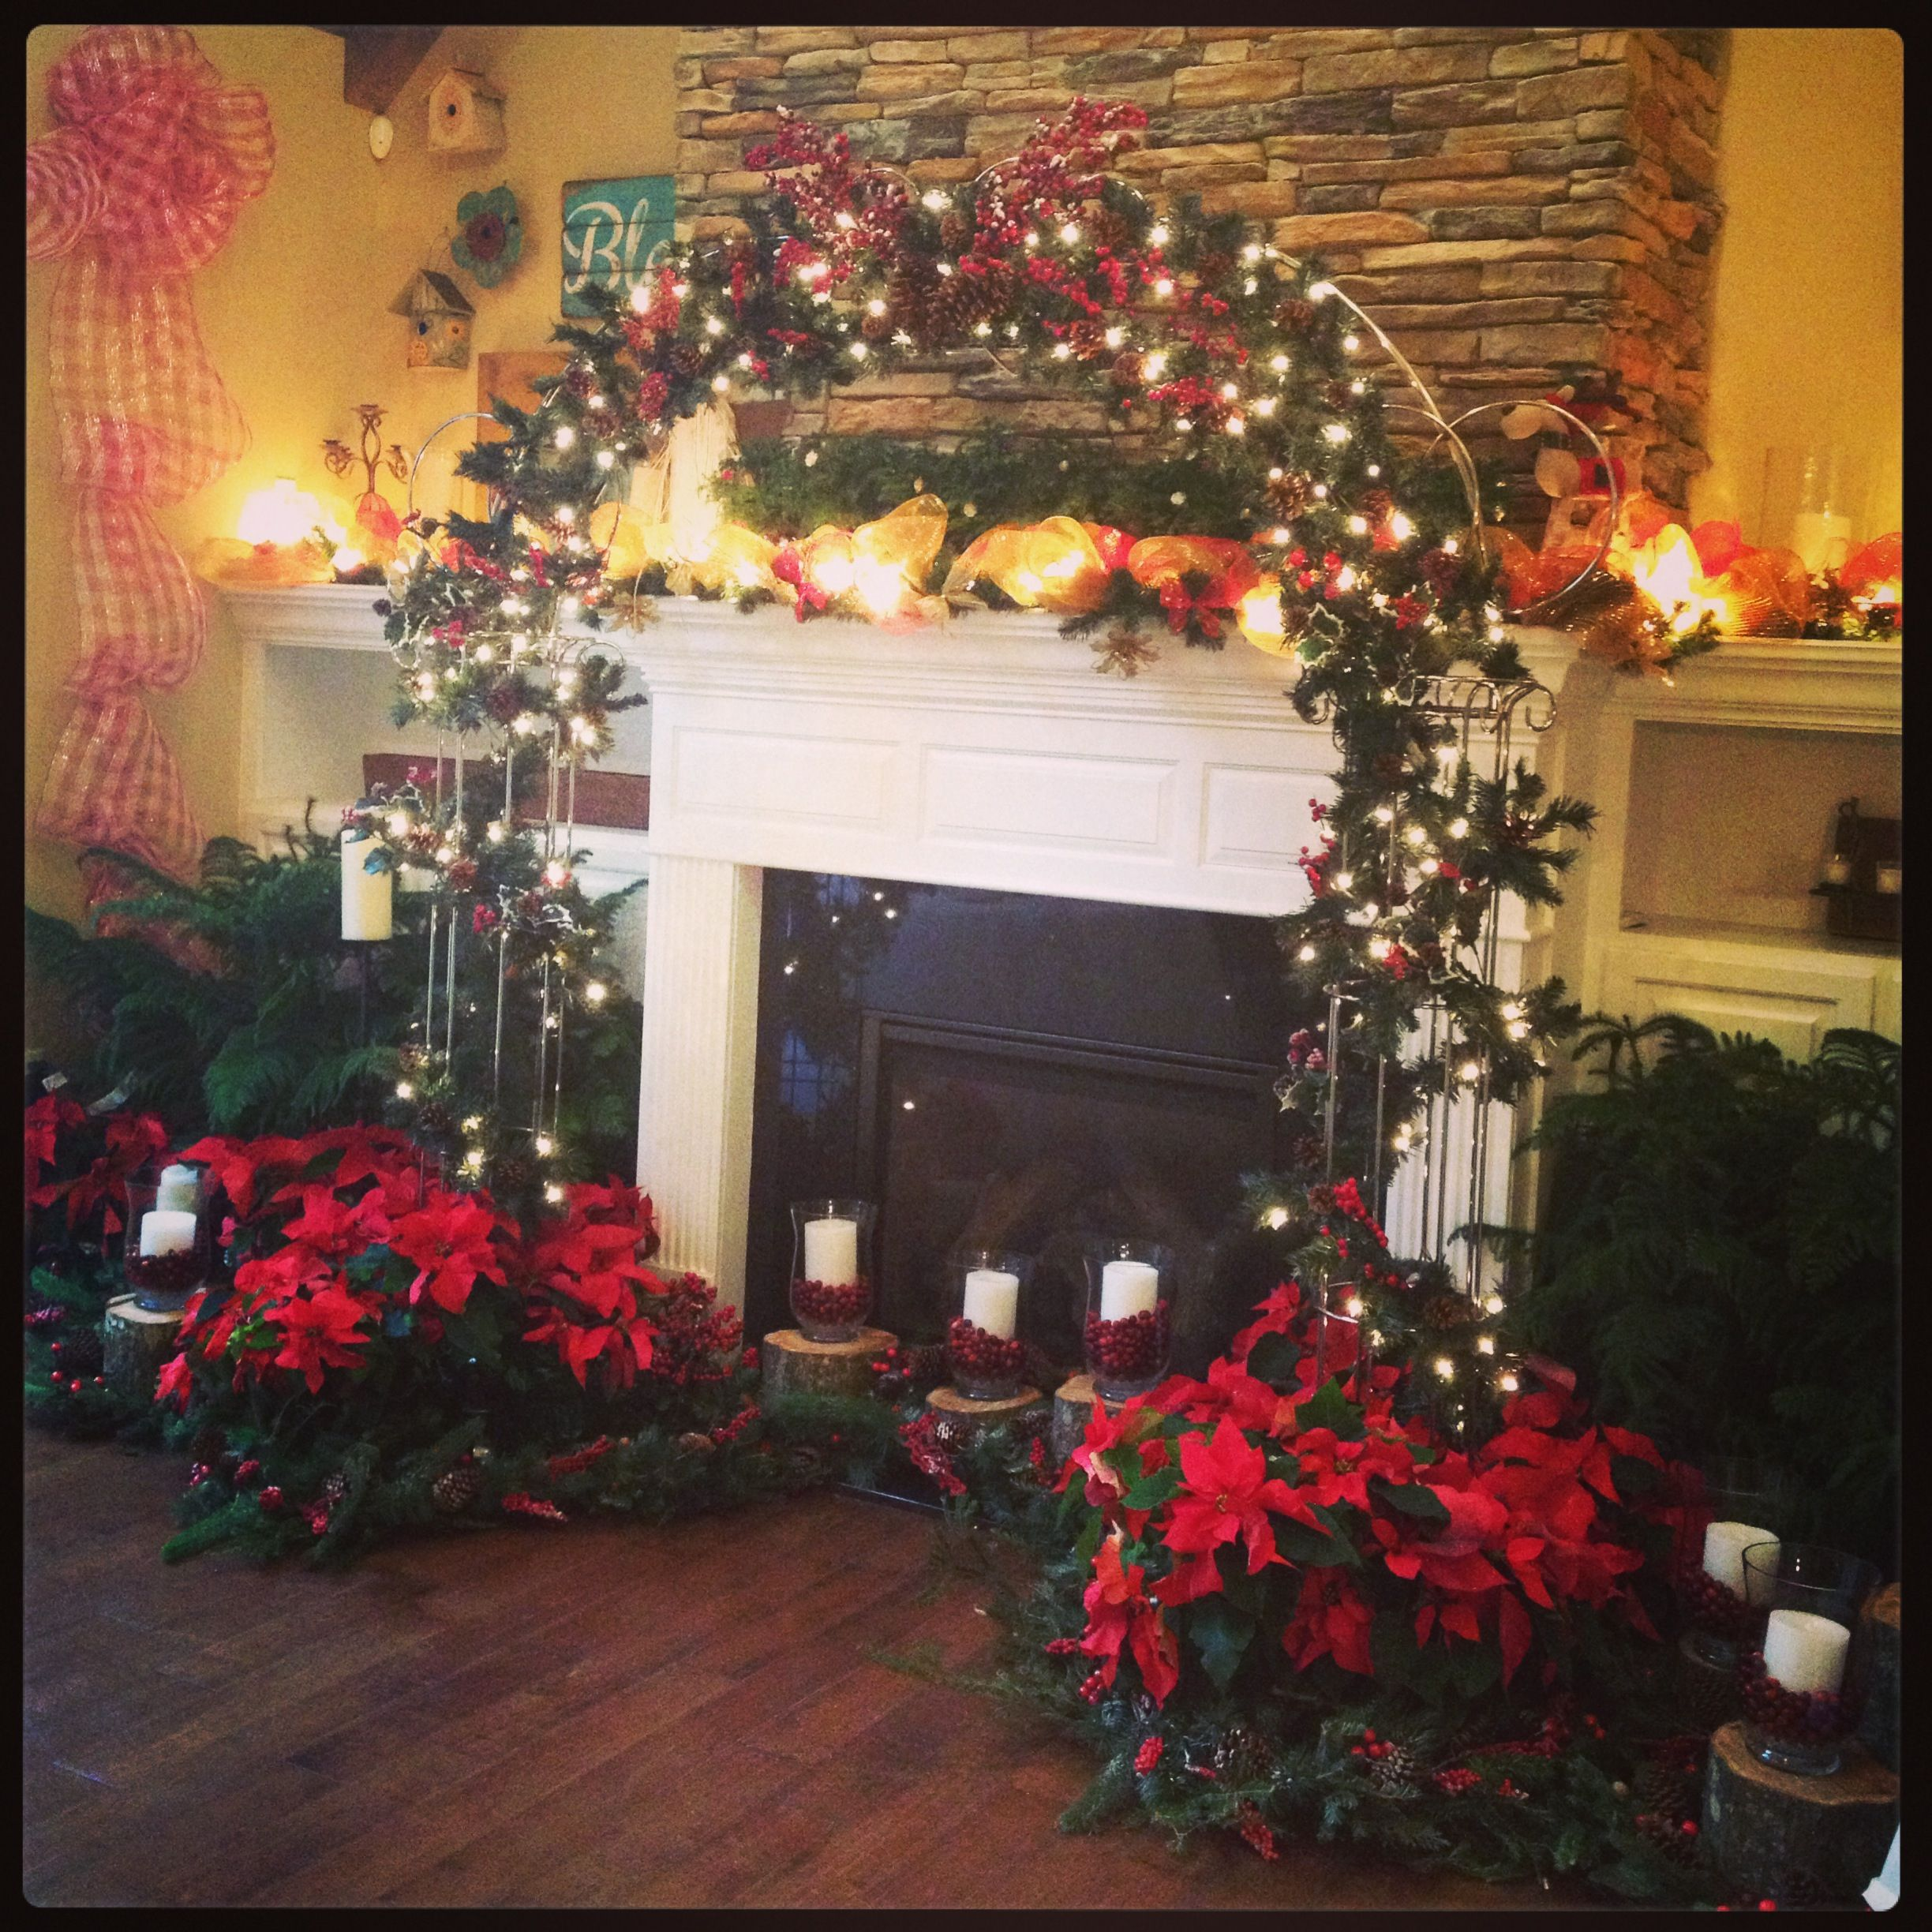 Christmas Fireplace Wedding Arch Poinsettias Indoor Wedding